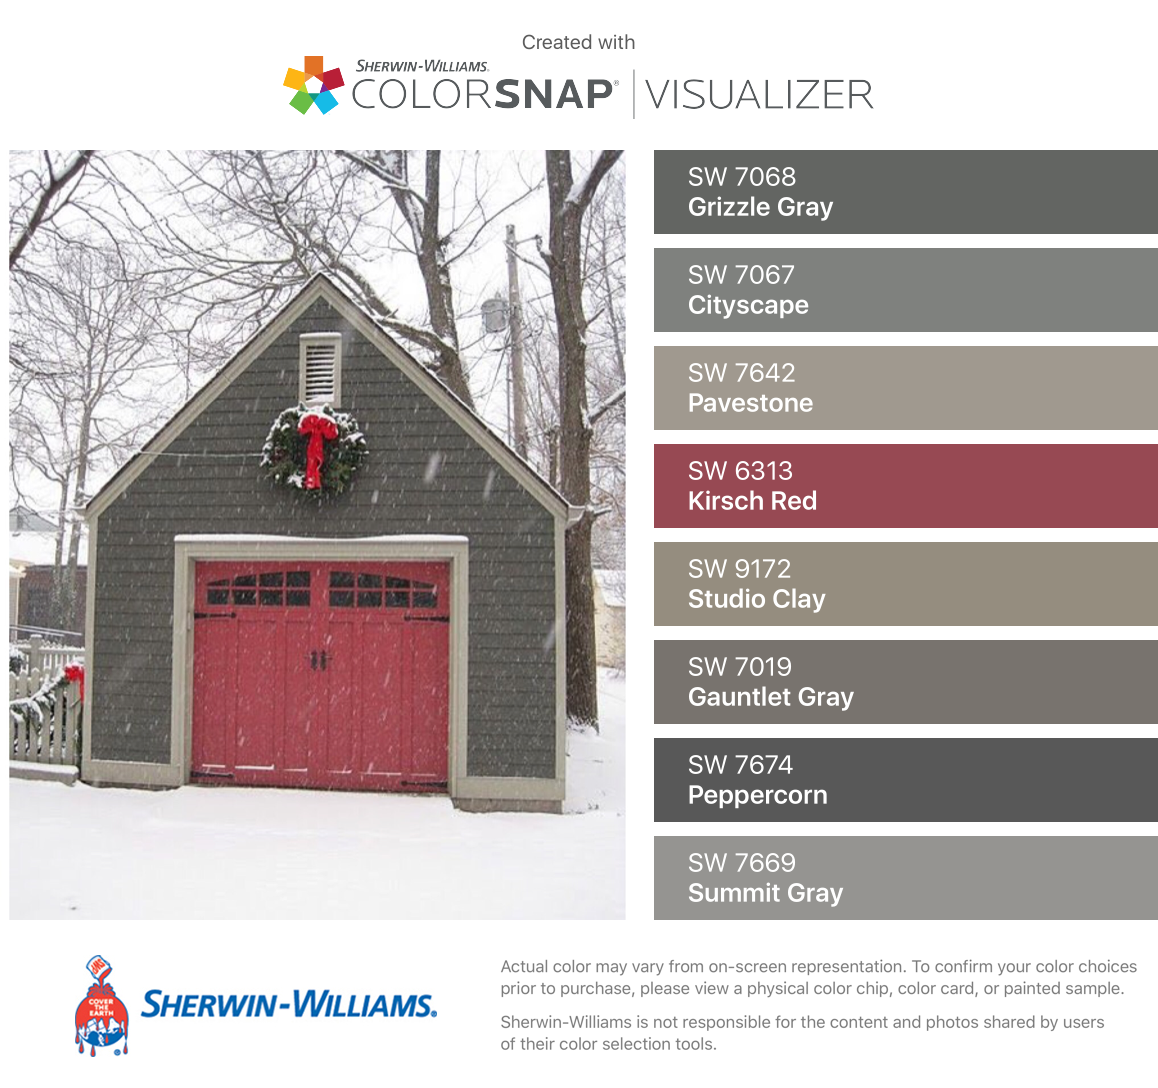 I Found These Colors With Colorsnap Visualizer For Iphone By Sherwin Williams Grizzle Gray Exterior Paint Colors For House House Paint Exterior House Colors